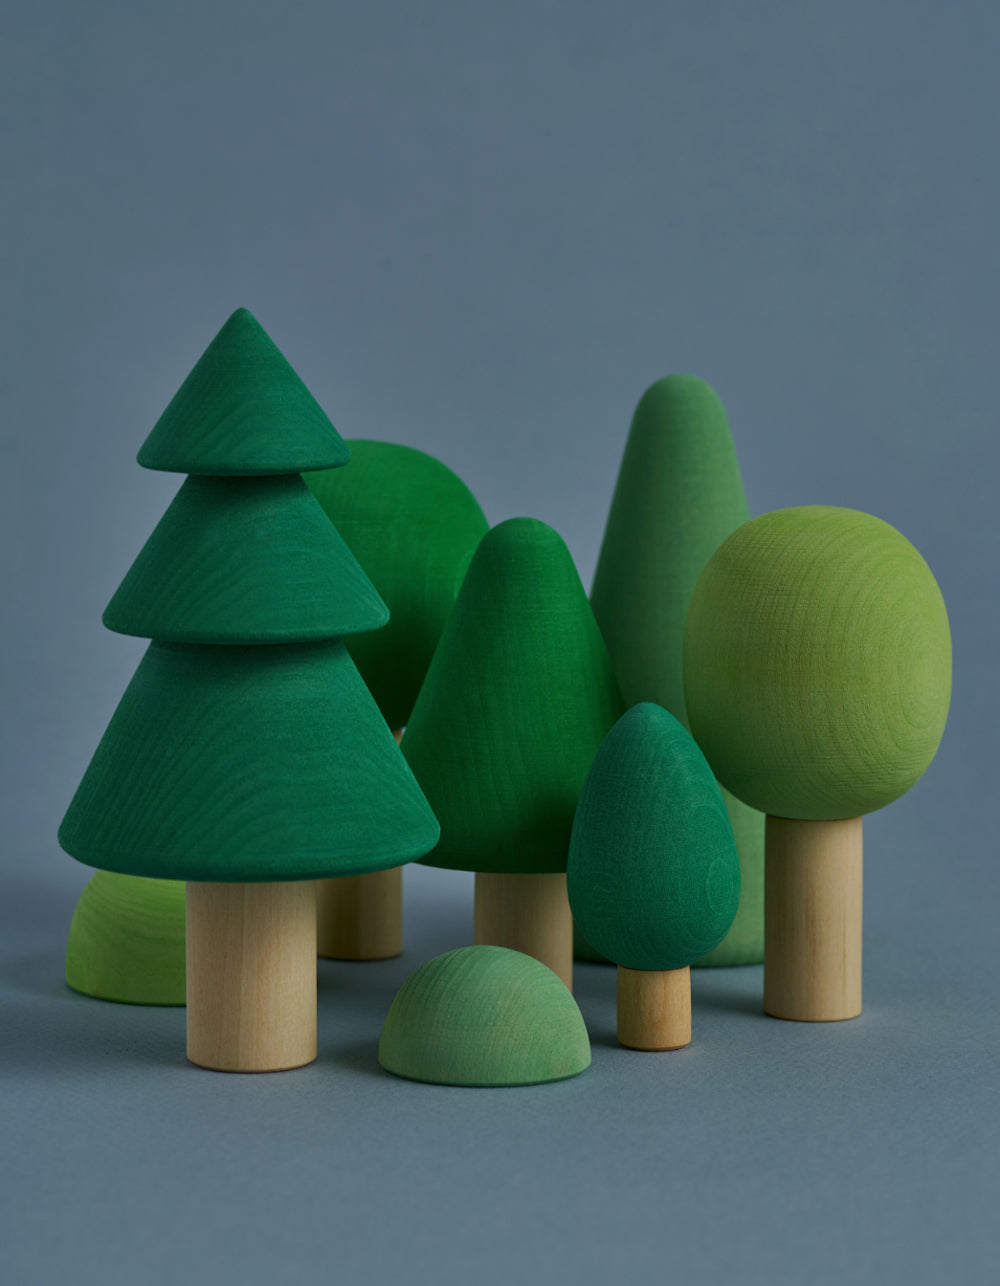 Raduga Grez wooden forest set